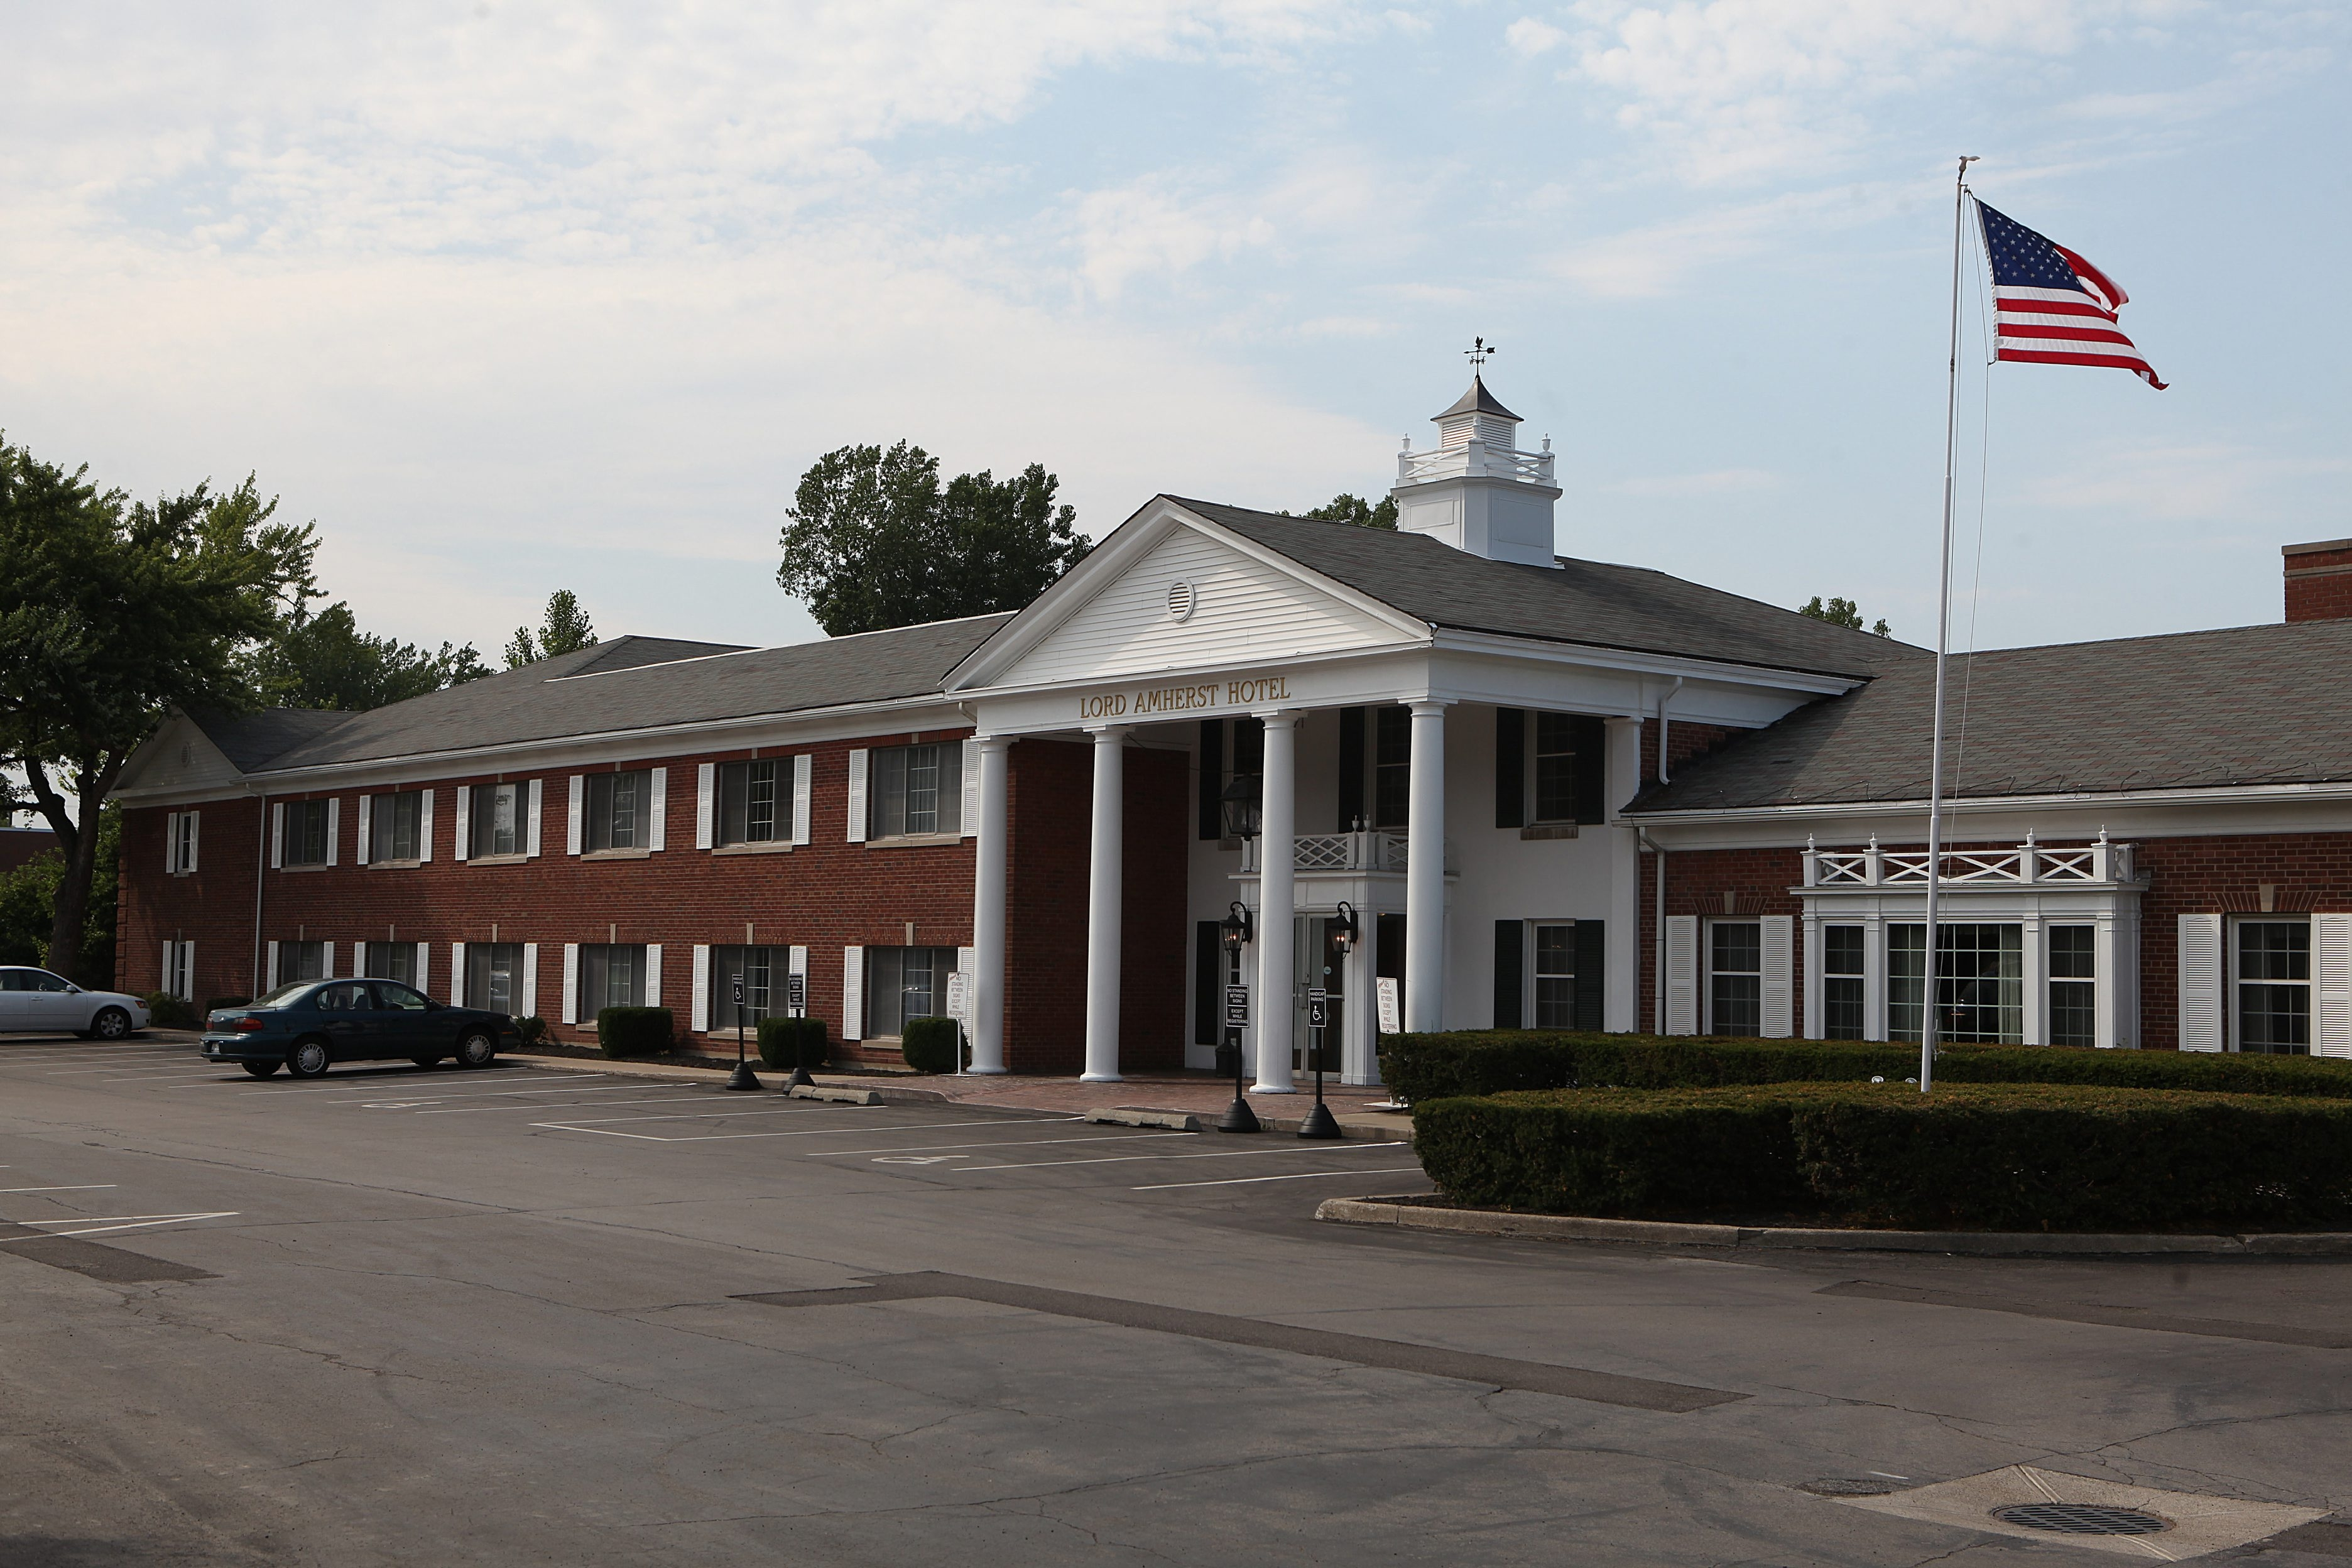 The Amherst Industrial Development Agency rejected Iskalo Development's request for an additional $1.1 million in tax breaks for the $19.9 million hotel renovation project.